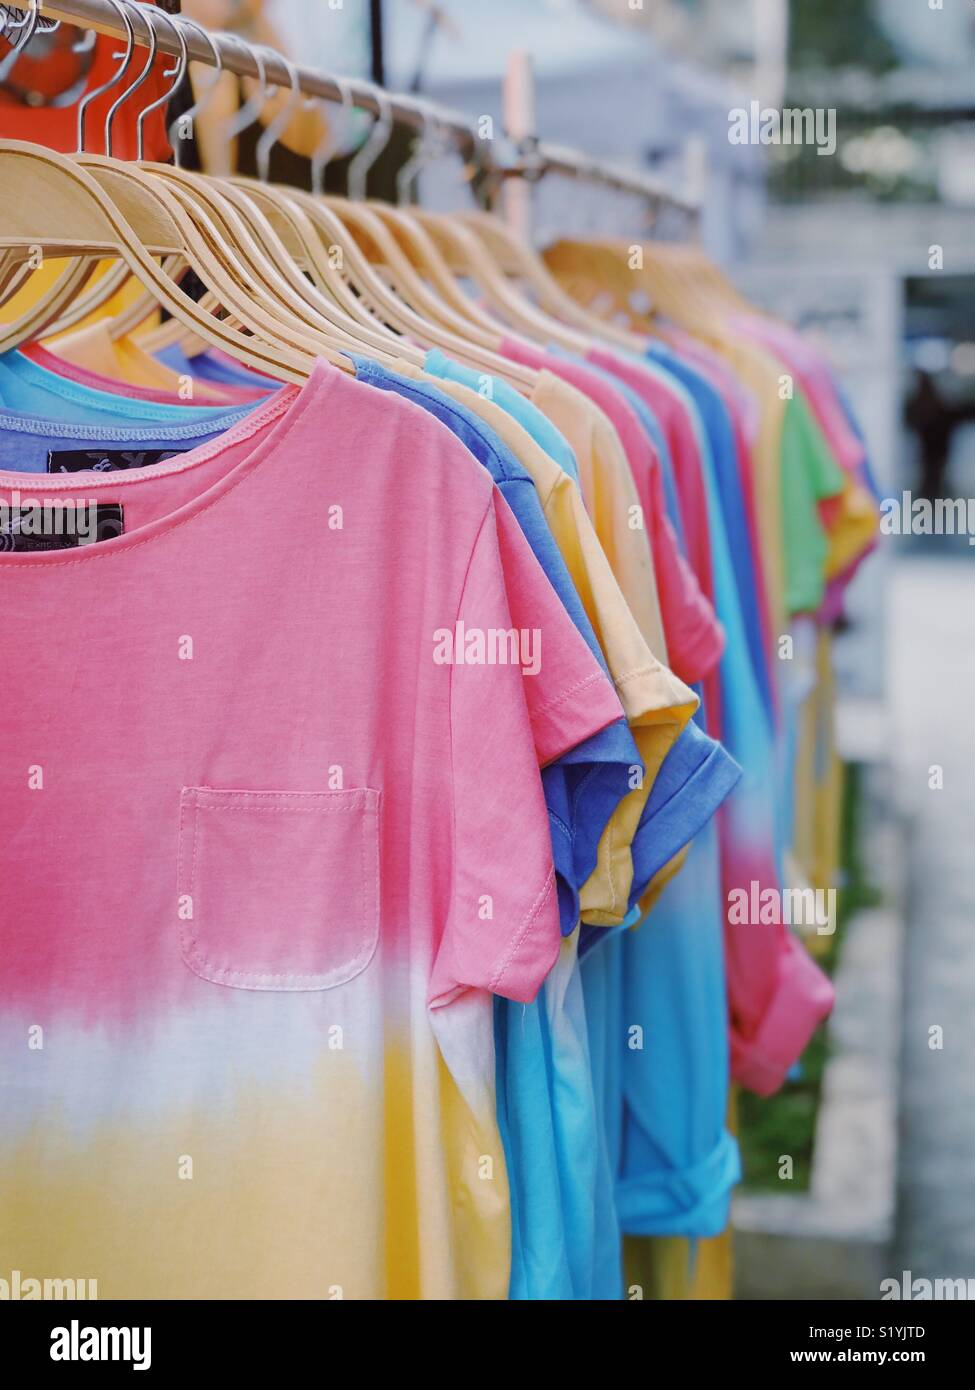 There is always a choices and one colour is just not enough. Why not buy same cloth with different colour if the material is super comfy. - Stock Image